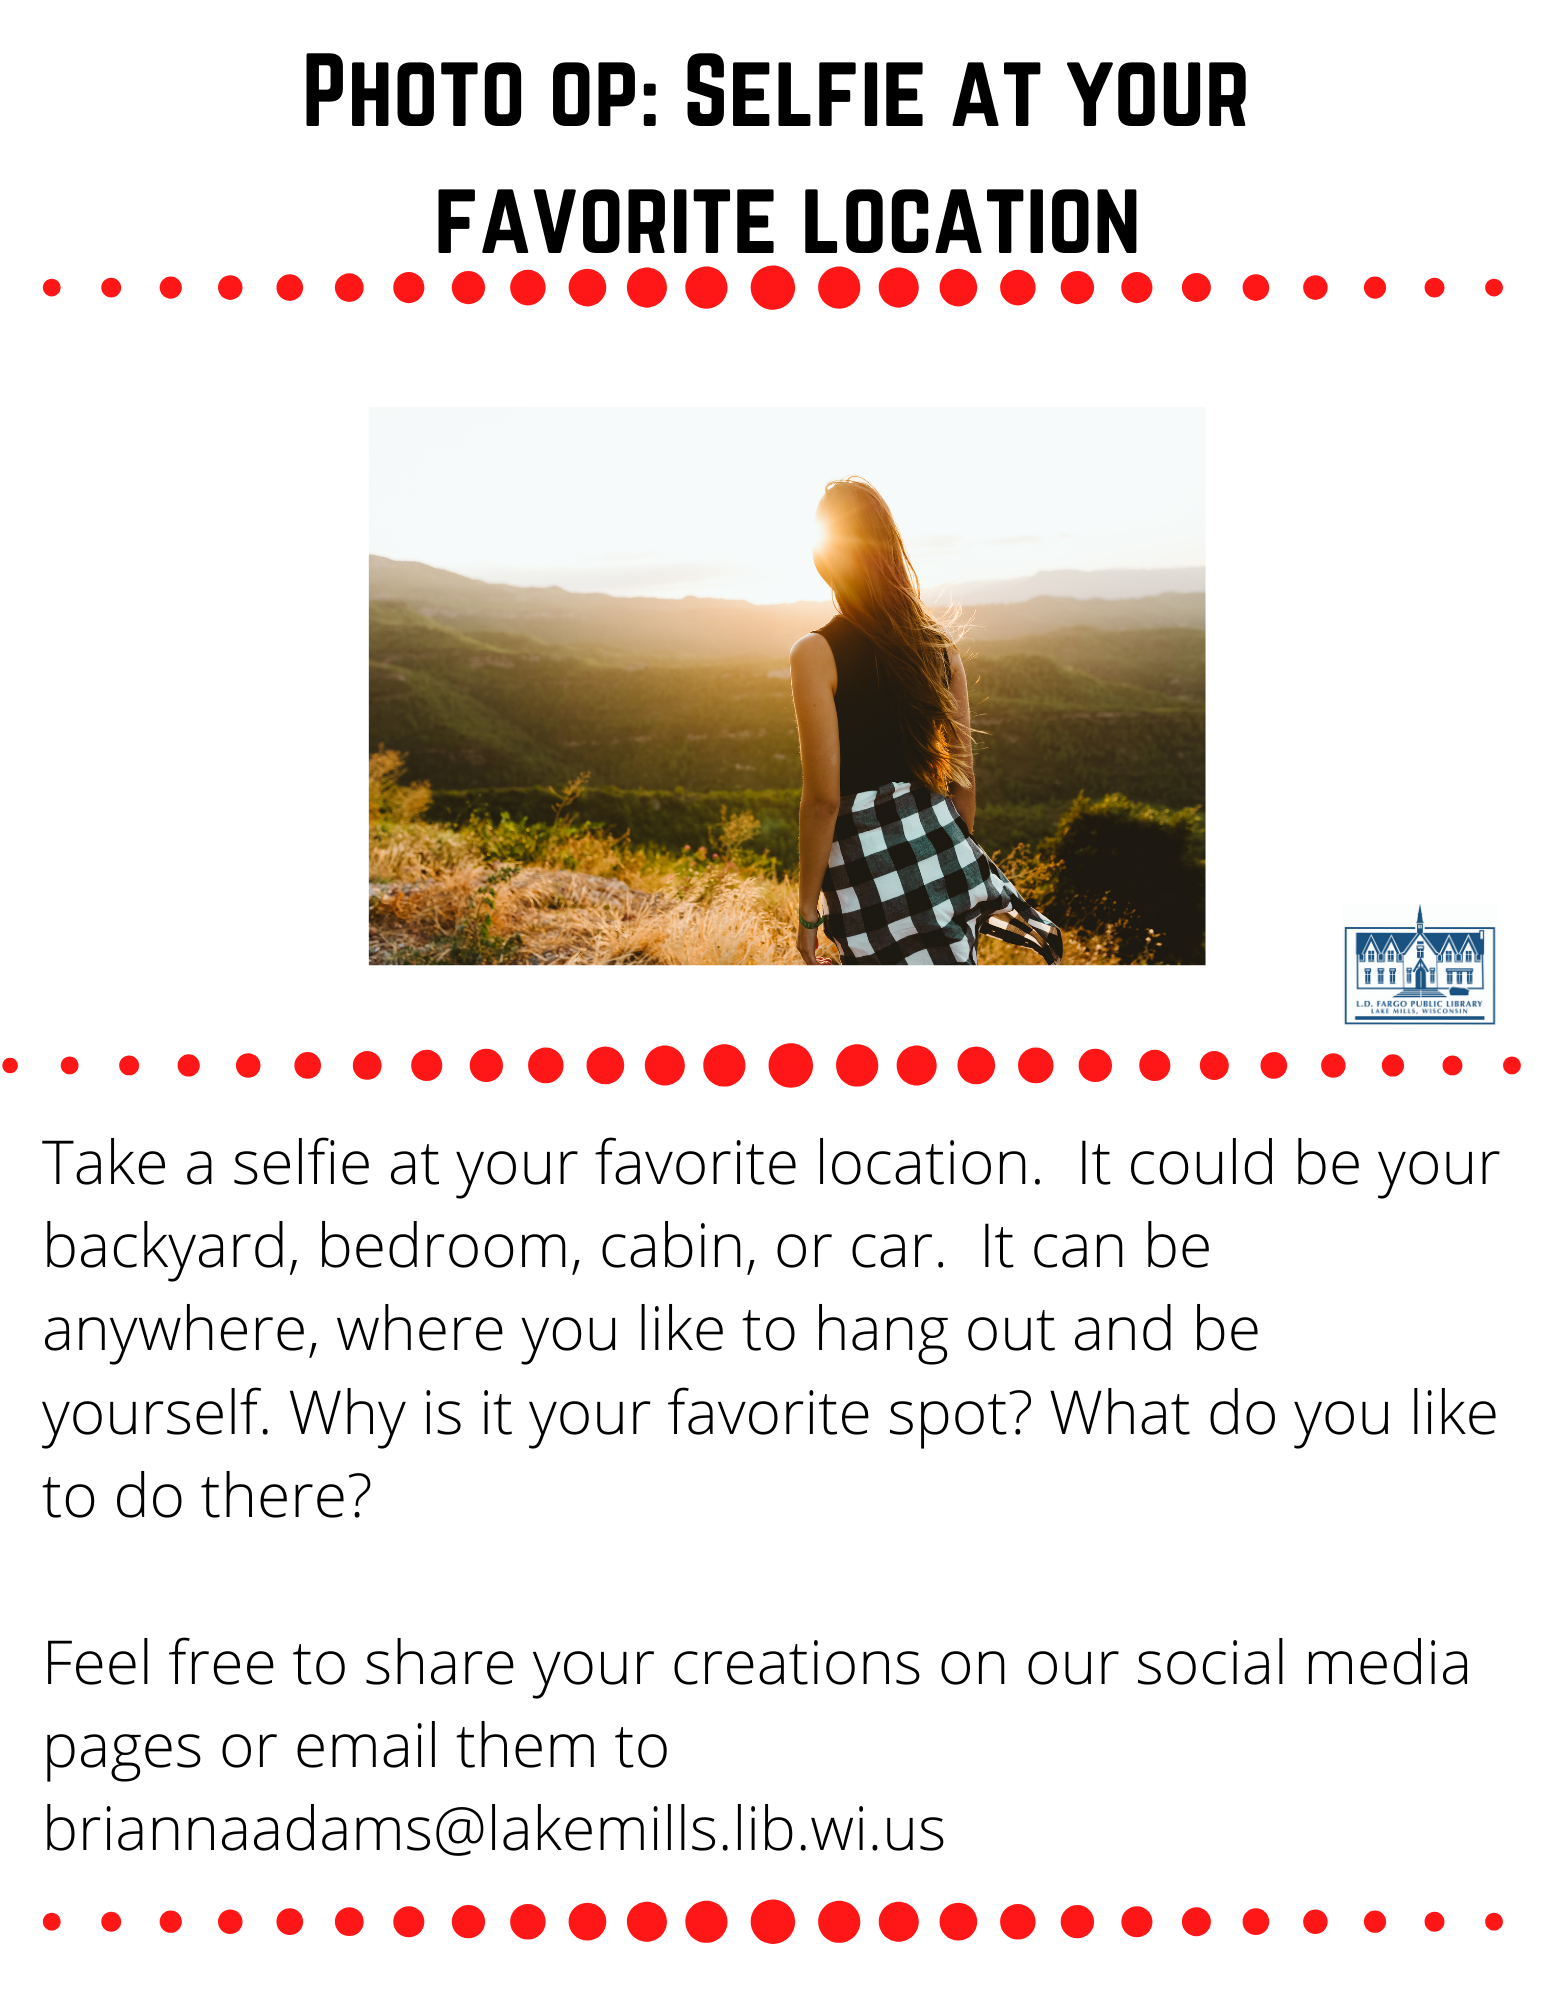 Photo op: Selfie at your  favorite location  Take a selfie at your favorite location.  It could be your backyard, bedroom, cabin, or car.  It can be anywhere, where you like to hang out and be yourself. Why is it your favorite spot? What do you like to do there?  Feel free to share your creations on our social media pages or email them to briannaadams@lakemills.lib.wi.us